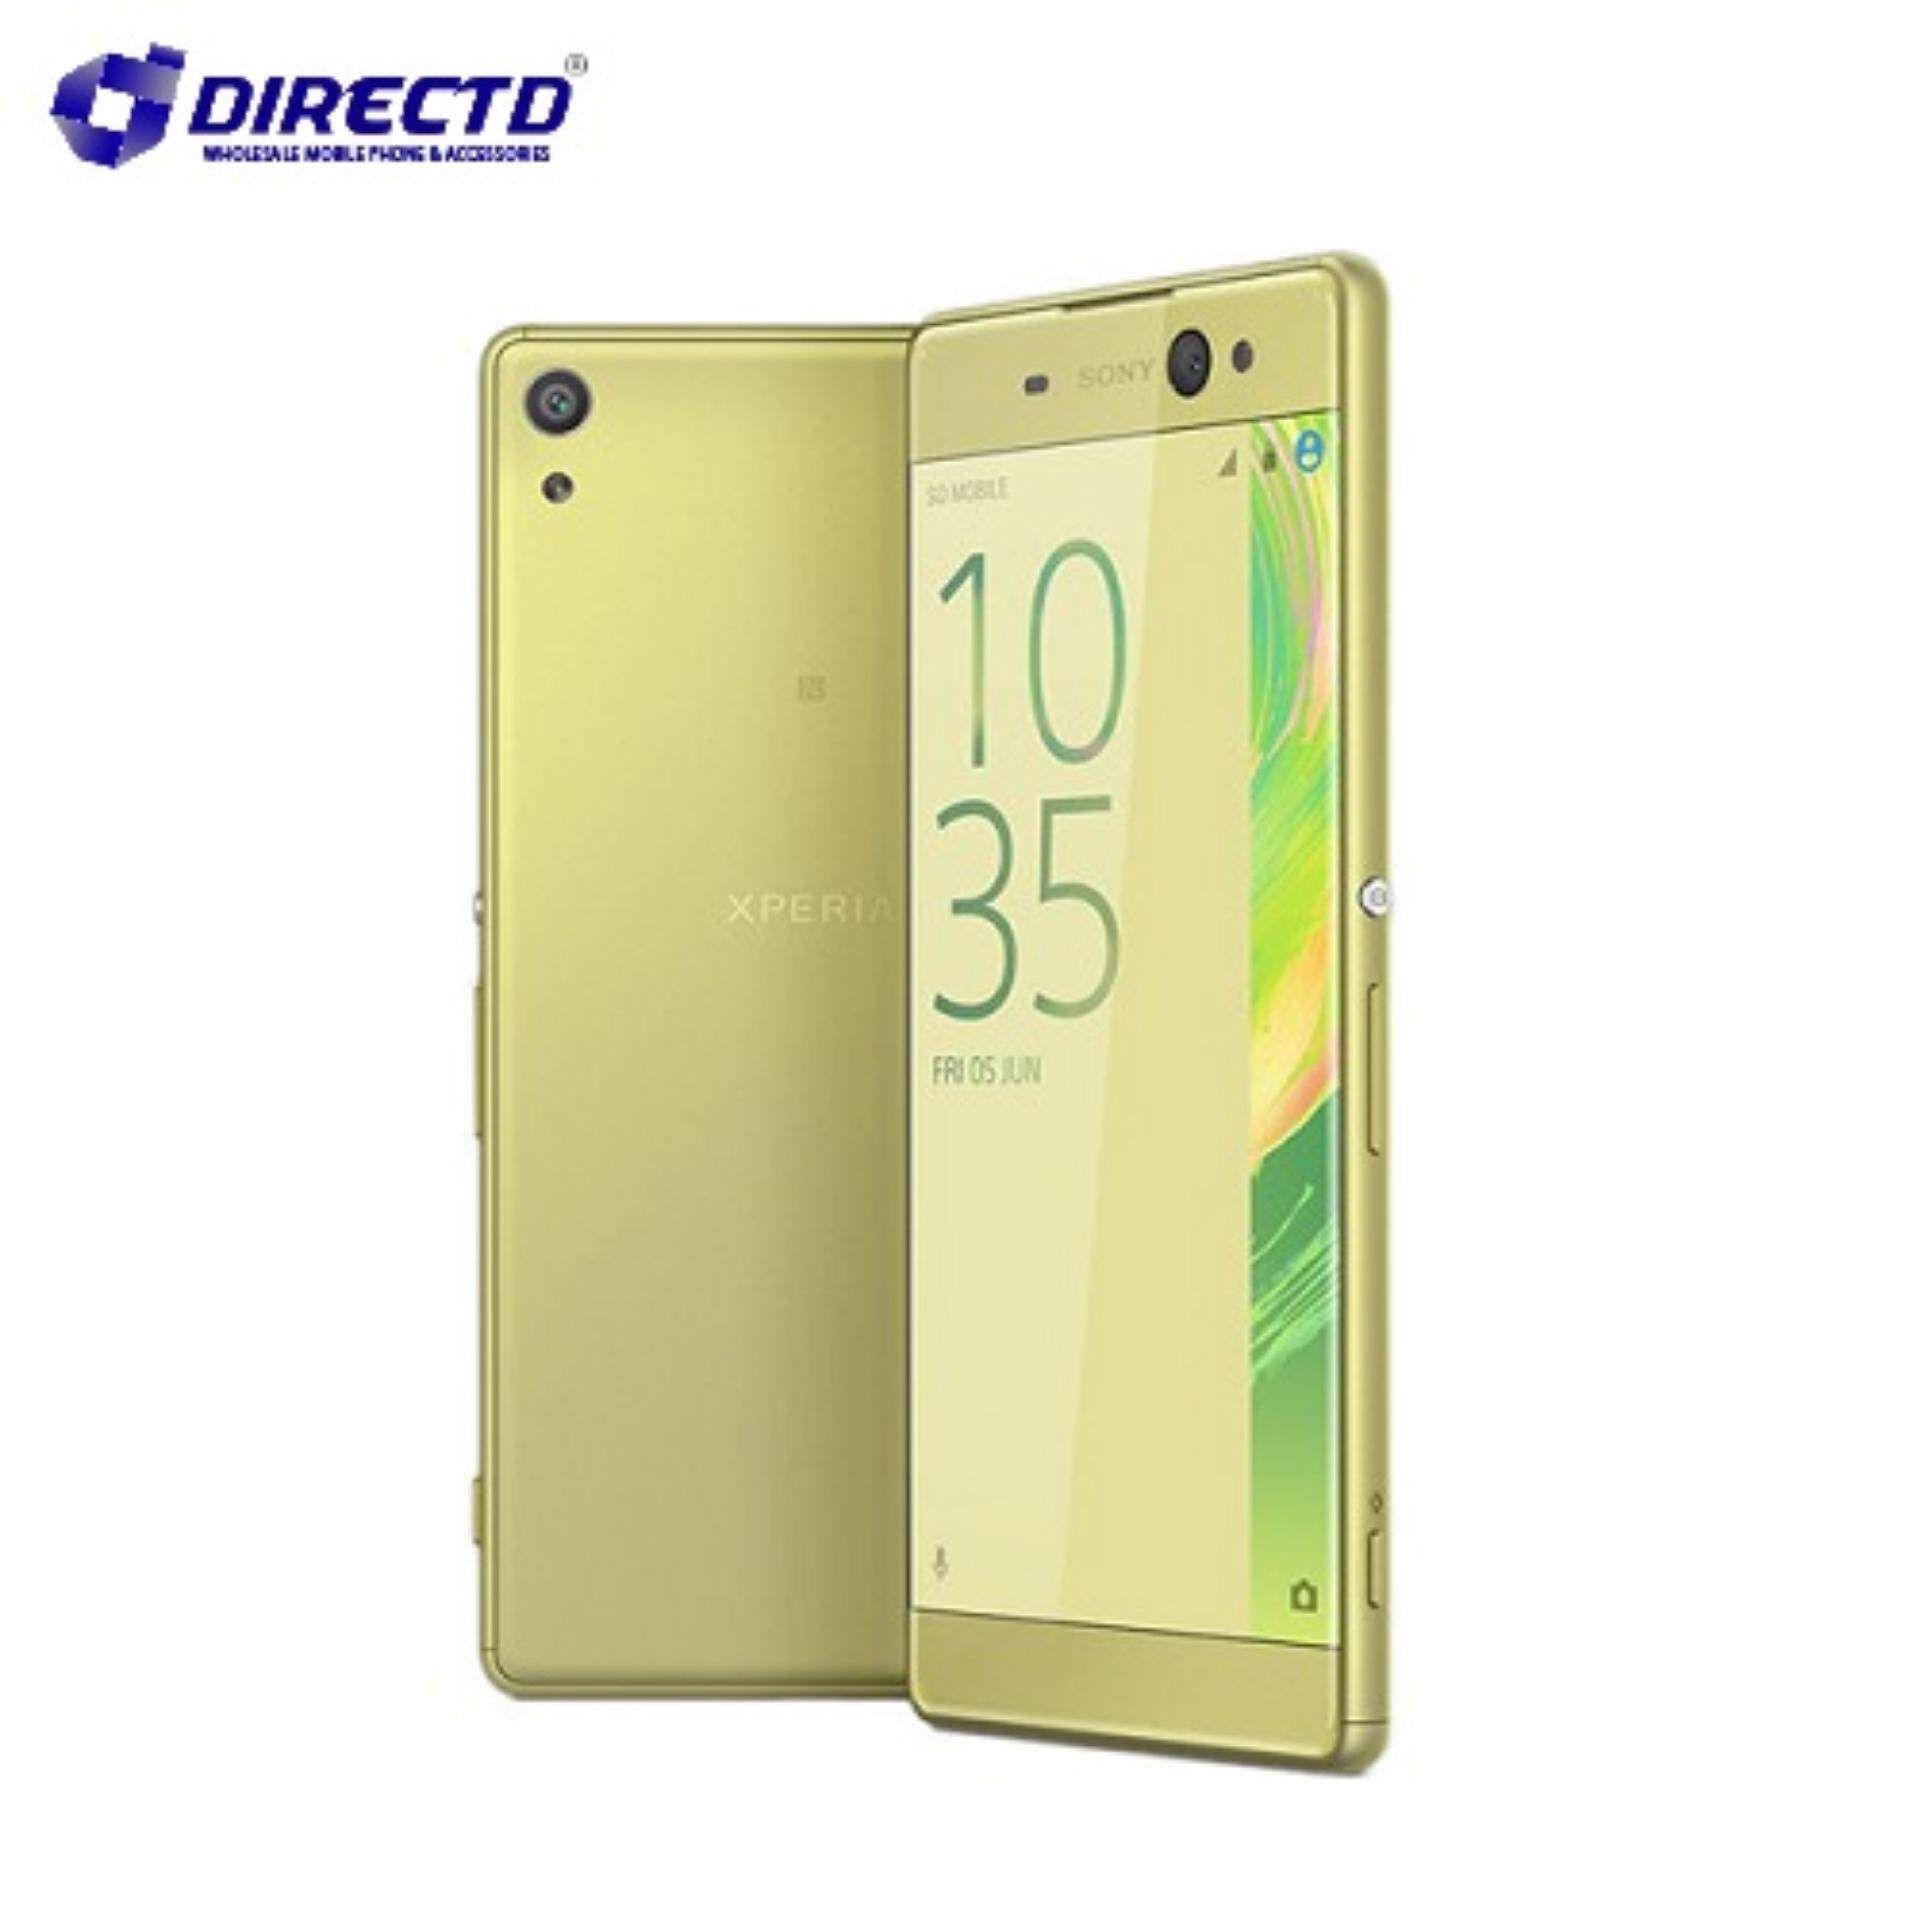 Sony Mobiles price in Malaysia - Best Sony Mobiles | Lazada